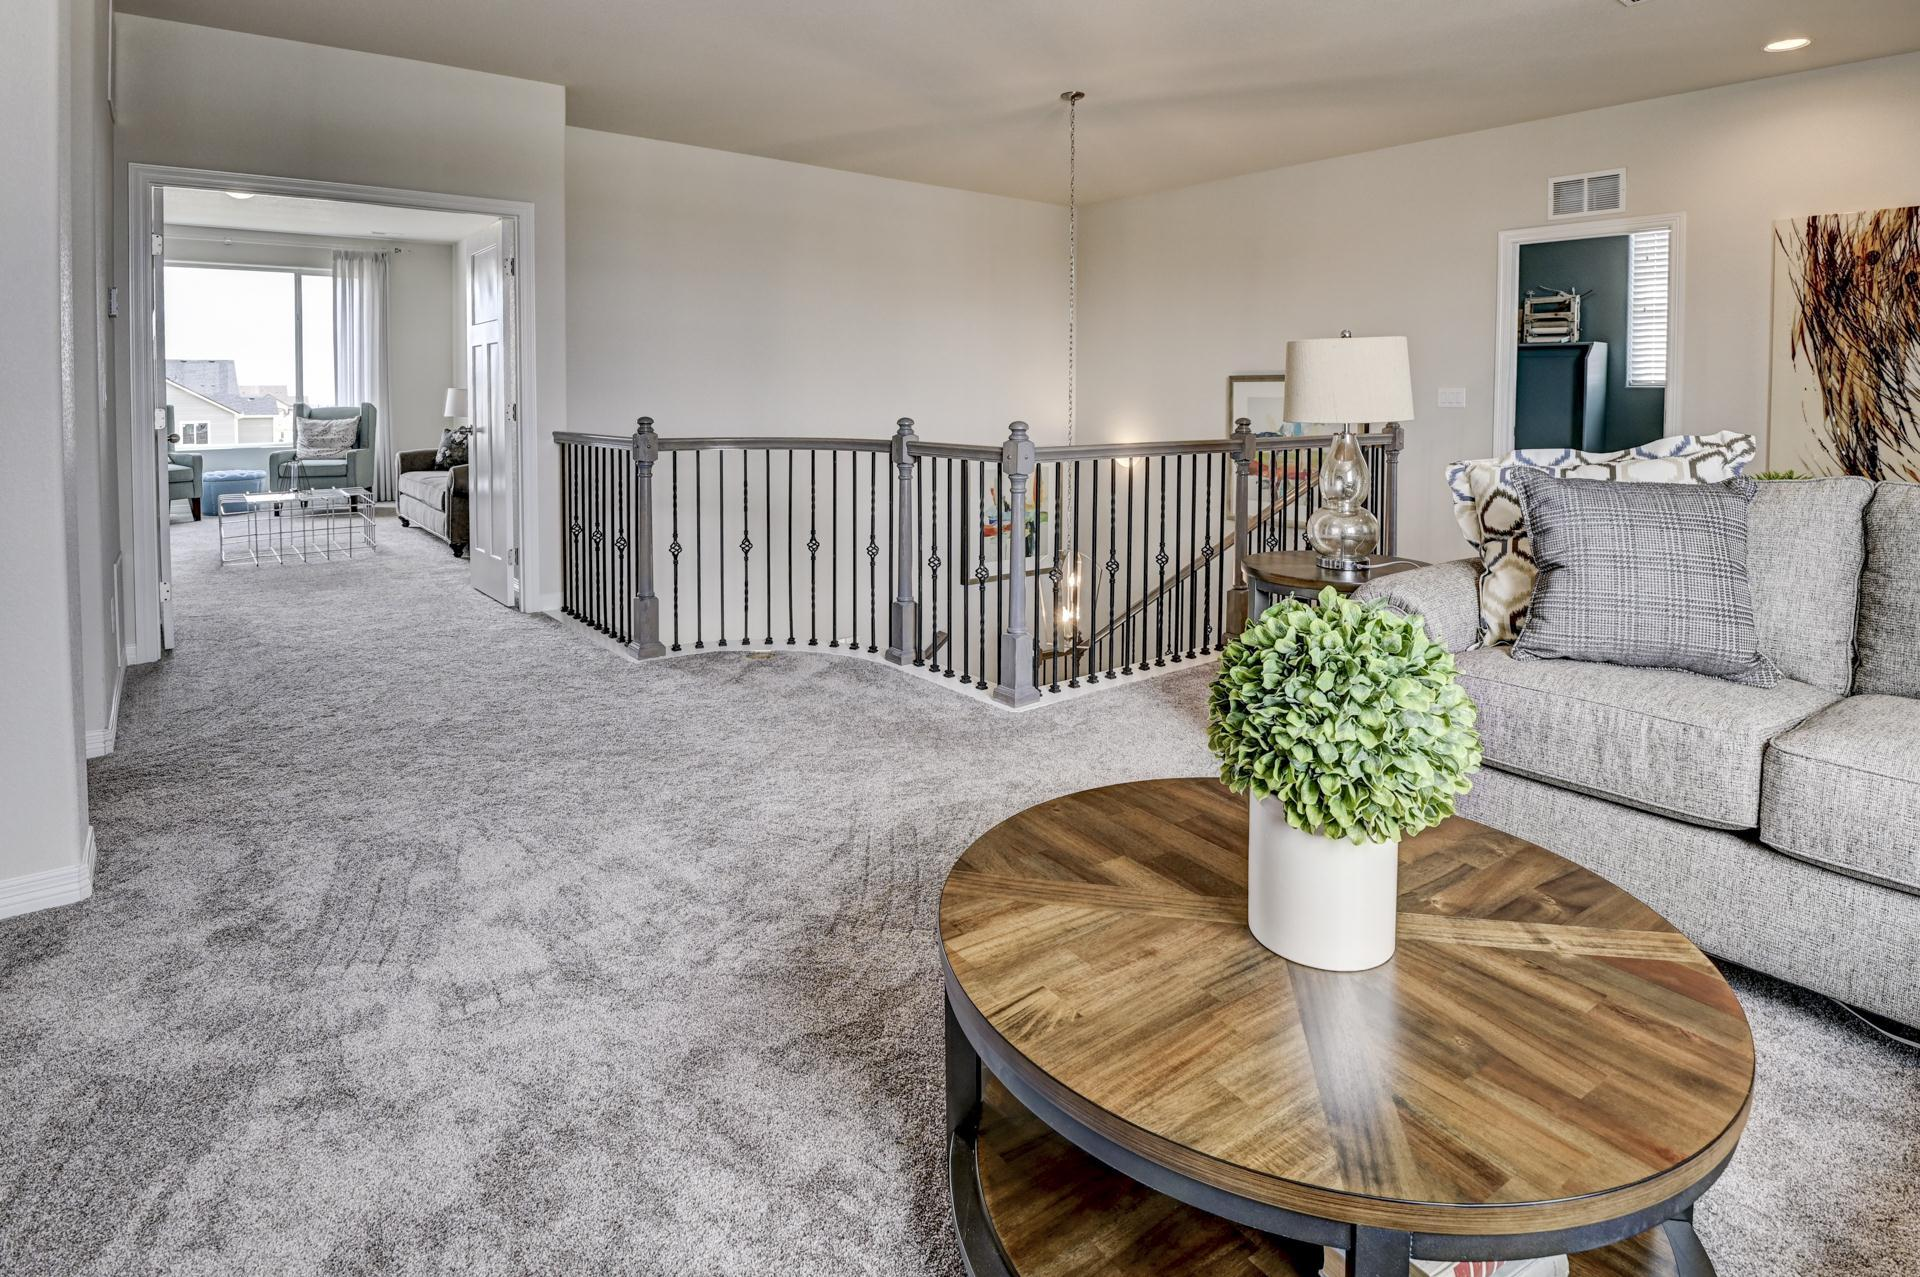 Living Area featured in the Sunlight Peak (Slab) By Reunion Homes in Colorado Springs, CO